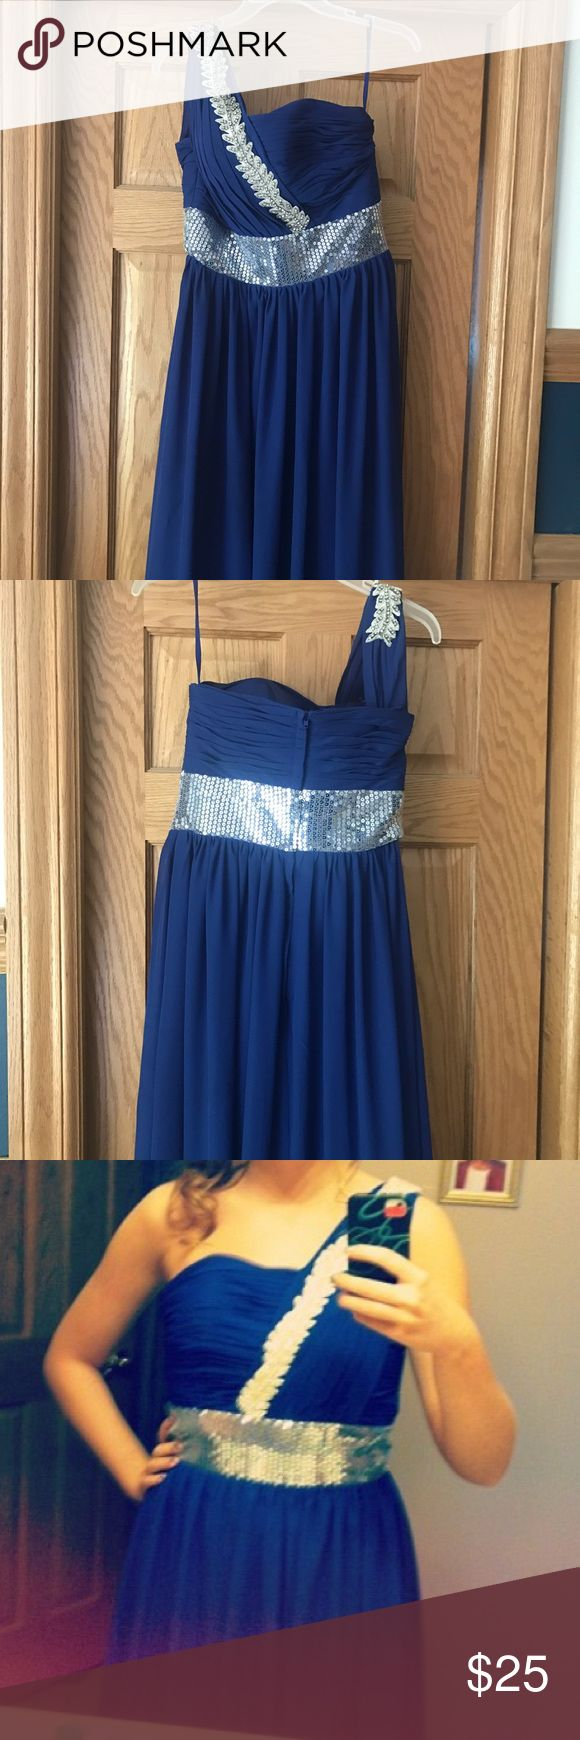 Navy Blue one strap dress LIKE NEW only worn once. One strap, navy blue, floor length gown with silver sequin accents Dresses Prom